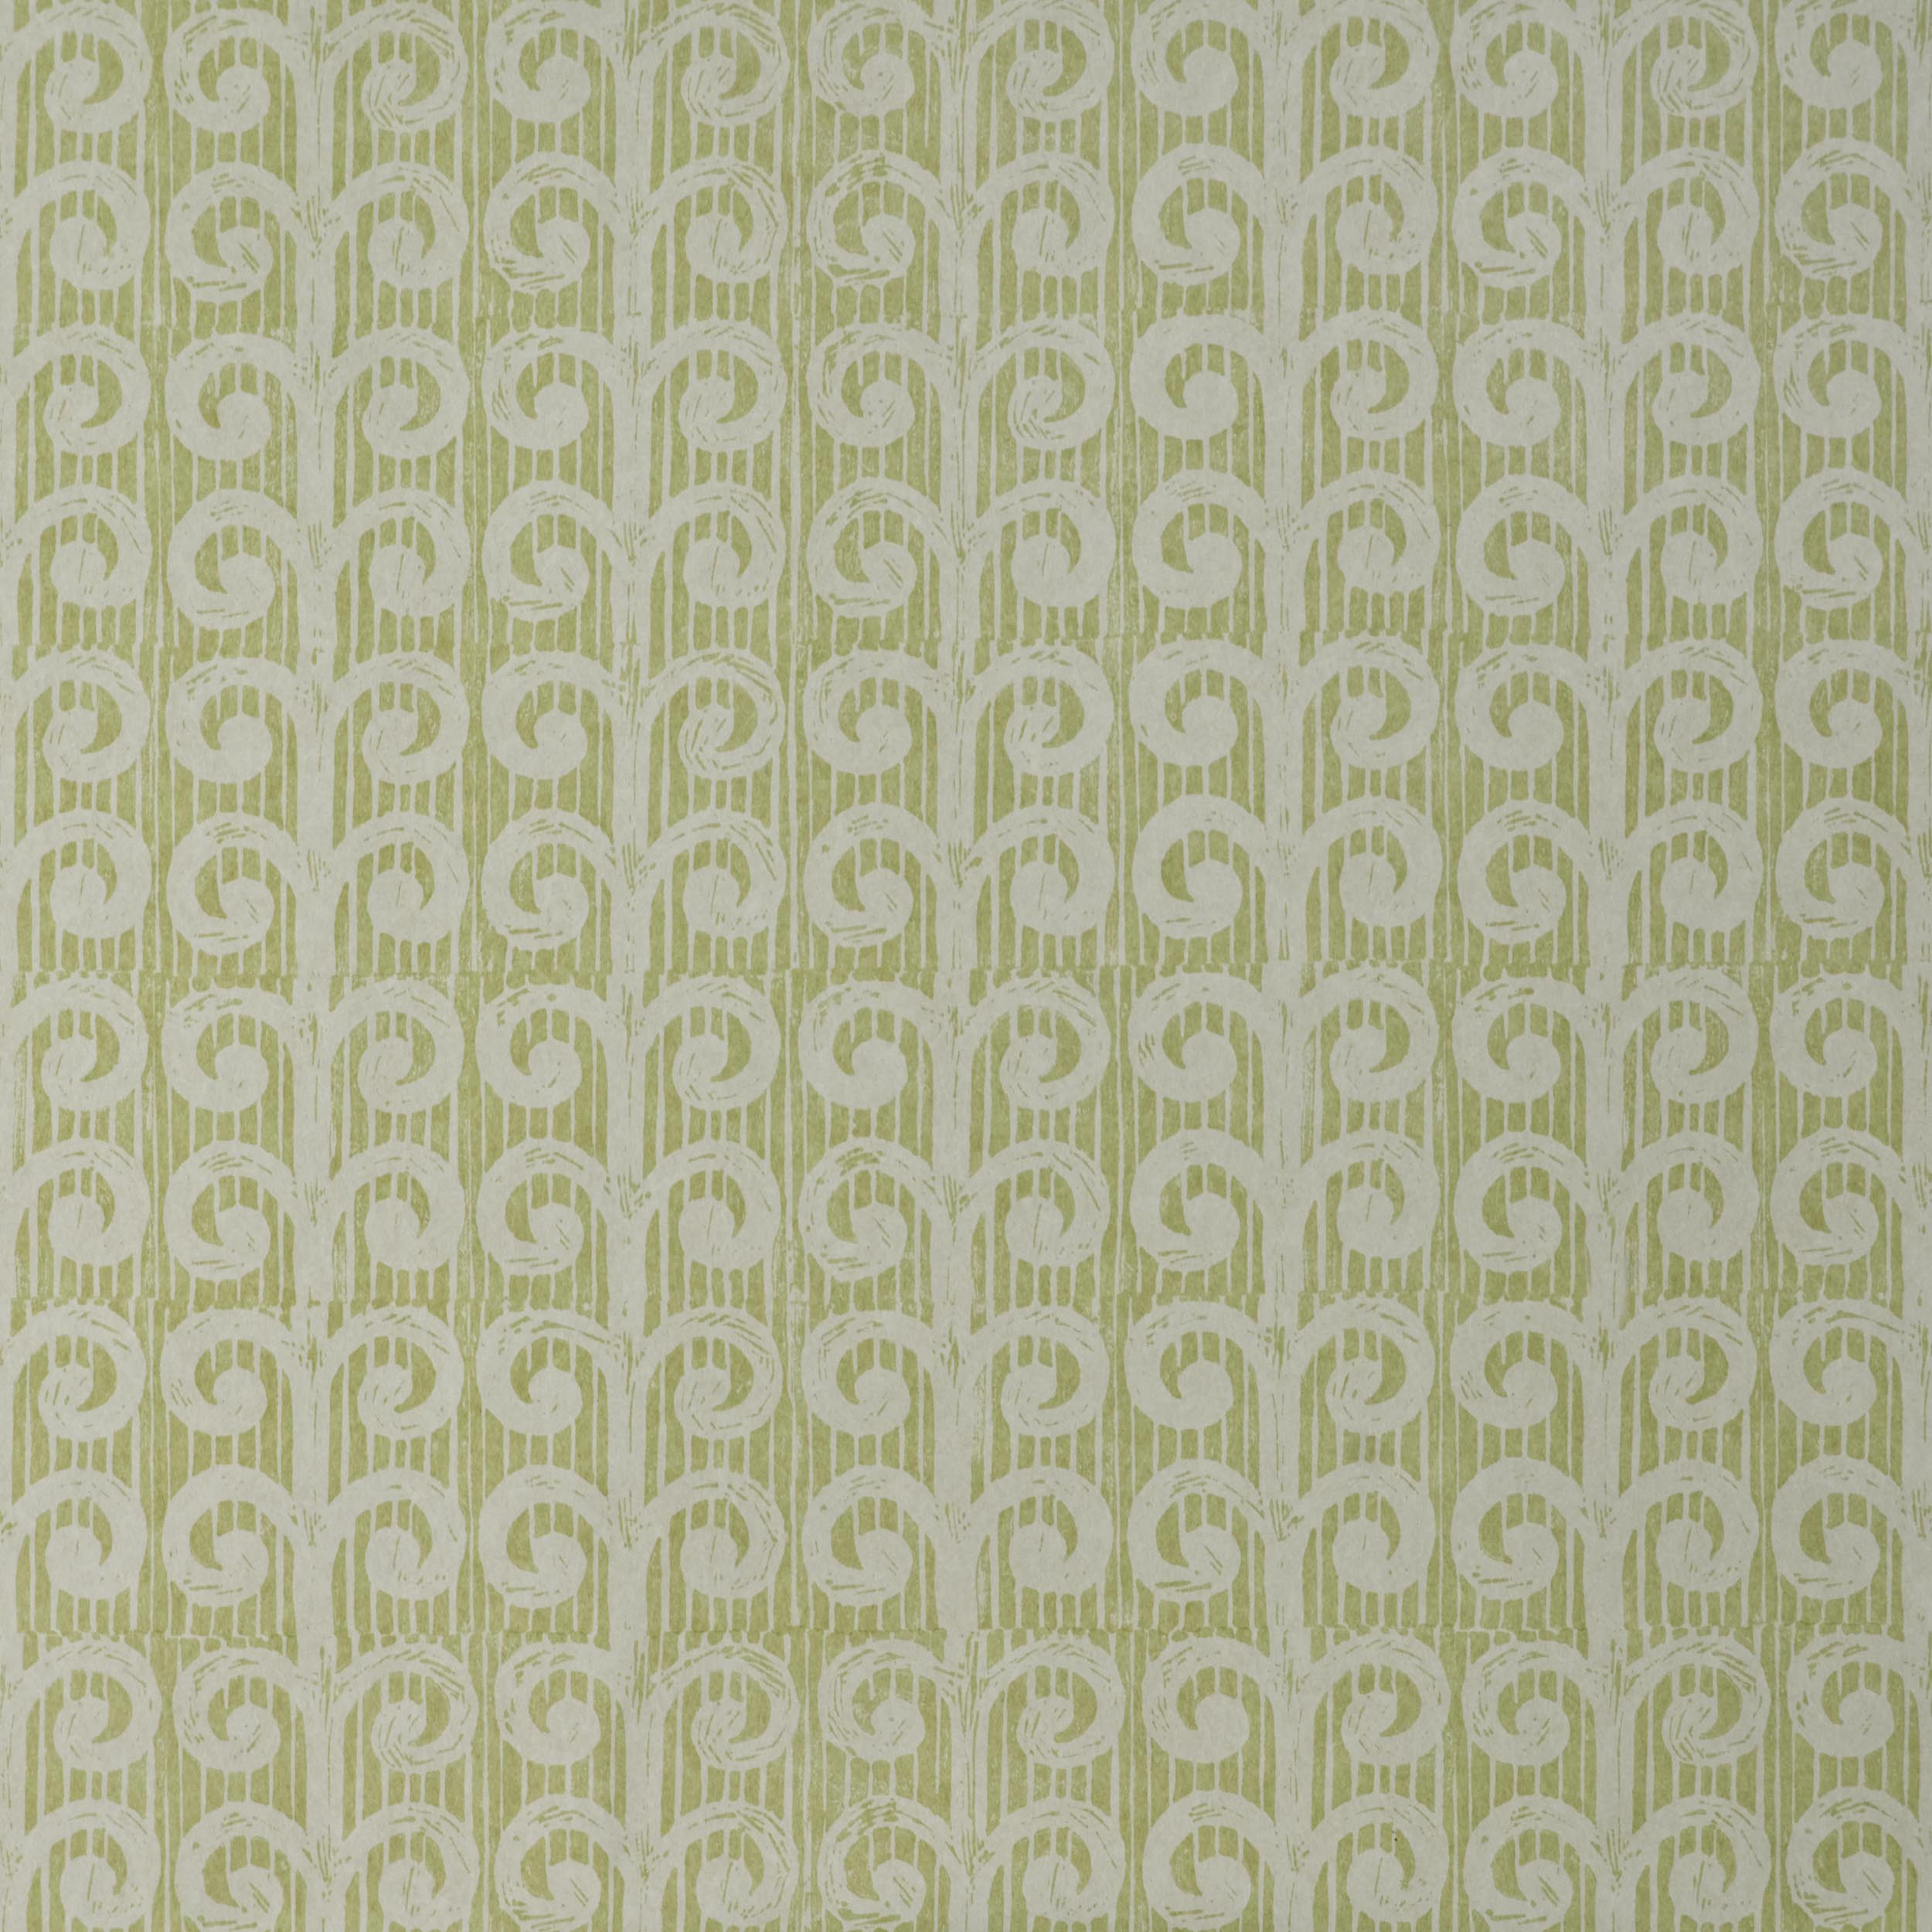 <p><strong>FERN</strong>green 688-04<a href=/the-brooke-collection/green-688-04>More →</a></p>